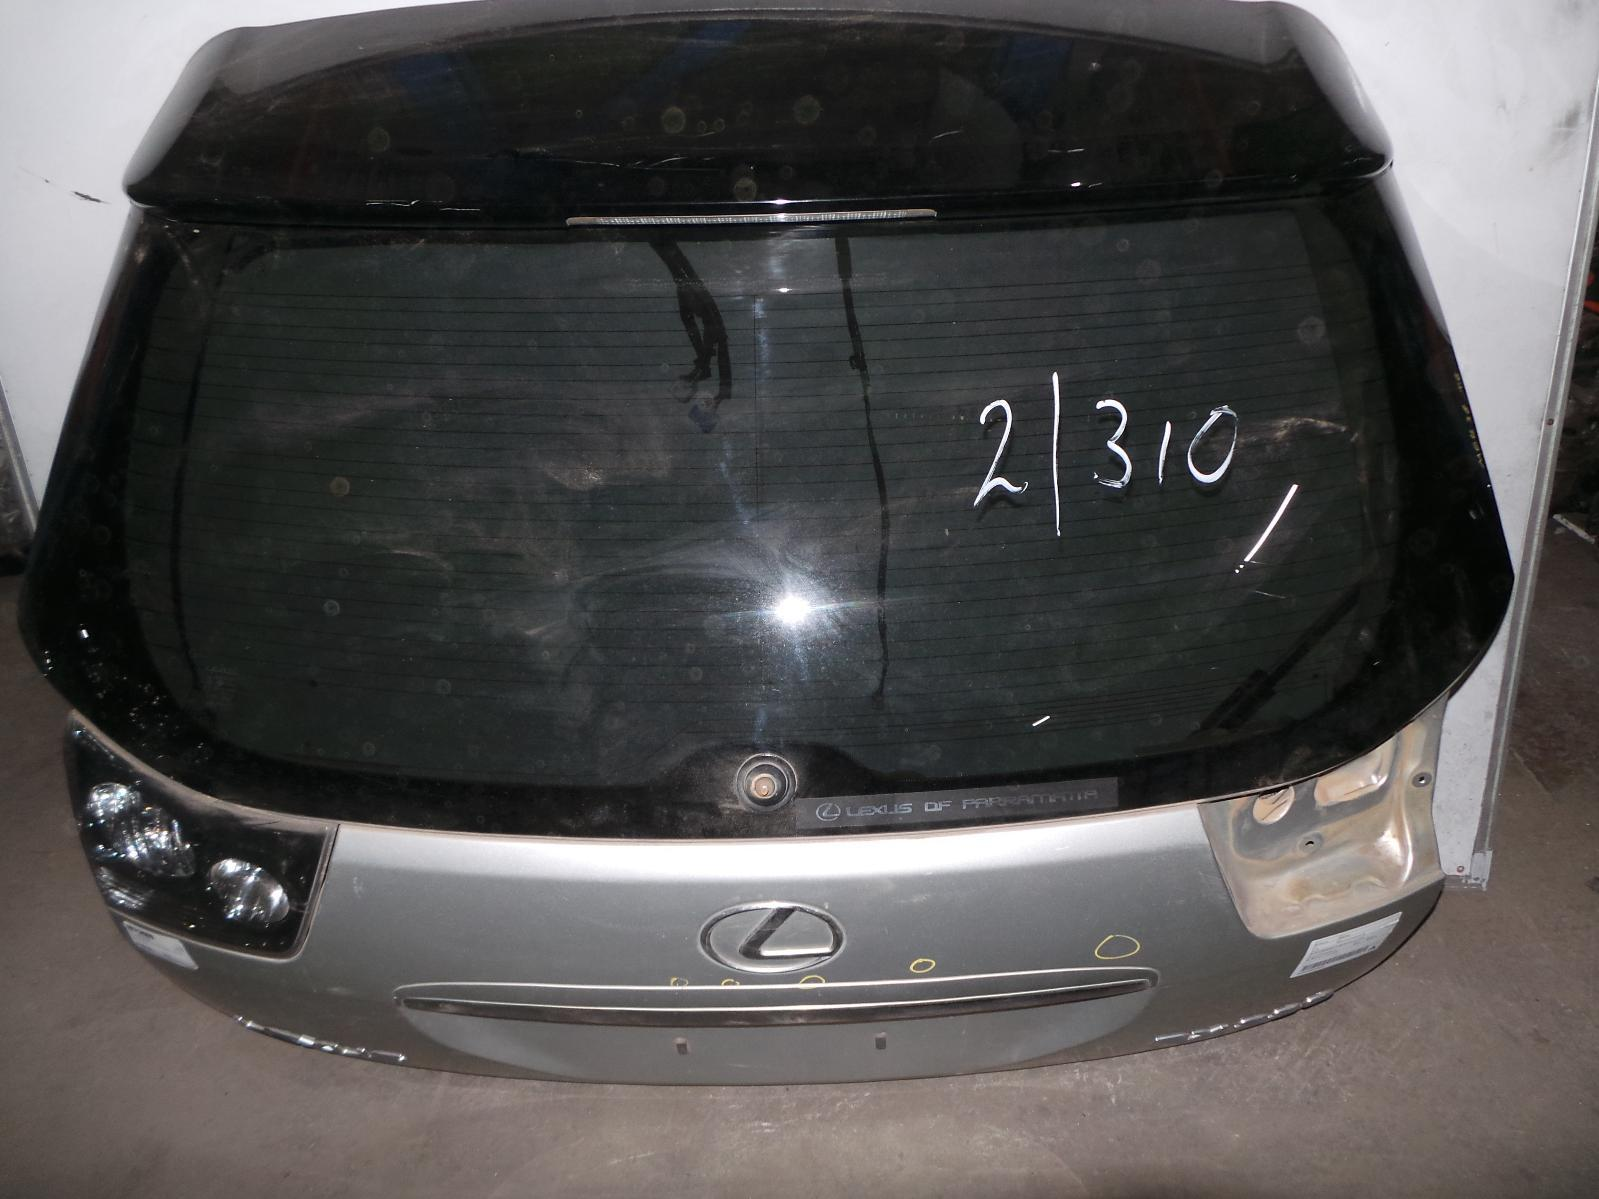 LEXUS RX330, Bootlid/Tailgate, TAILGATE, W/ POWER LIFTGATE TYPE, 04/03-12/05